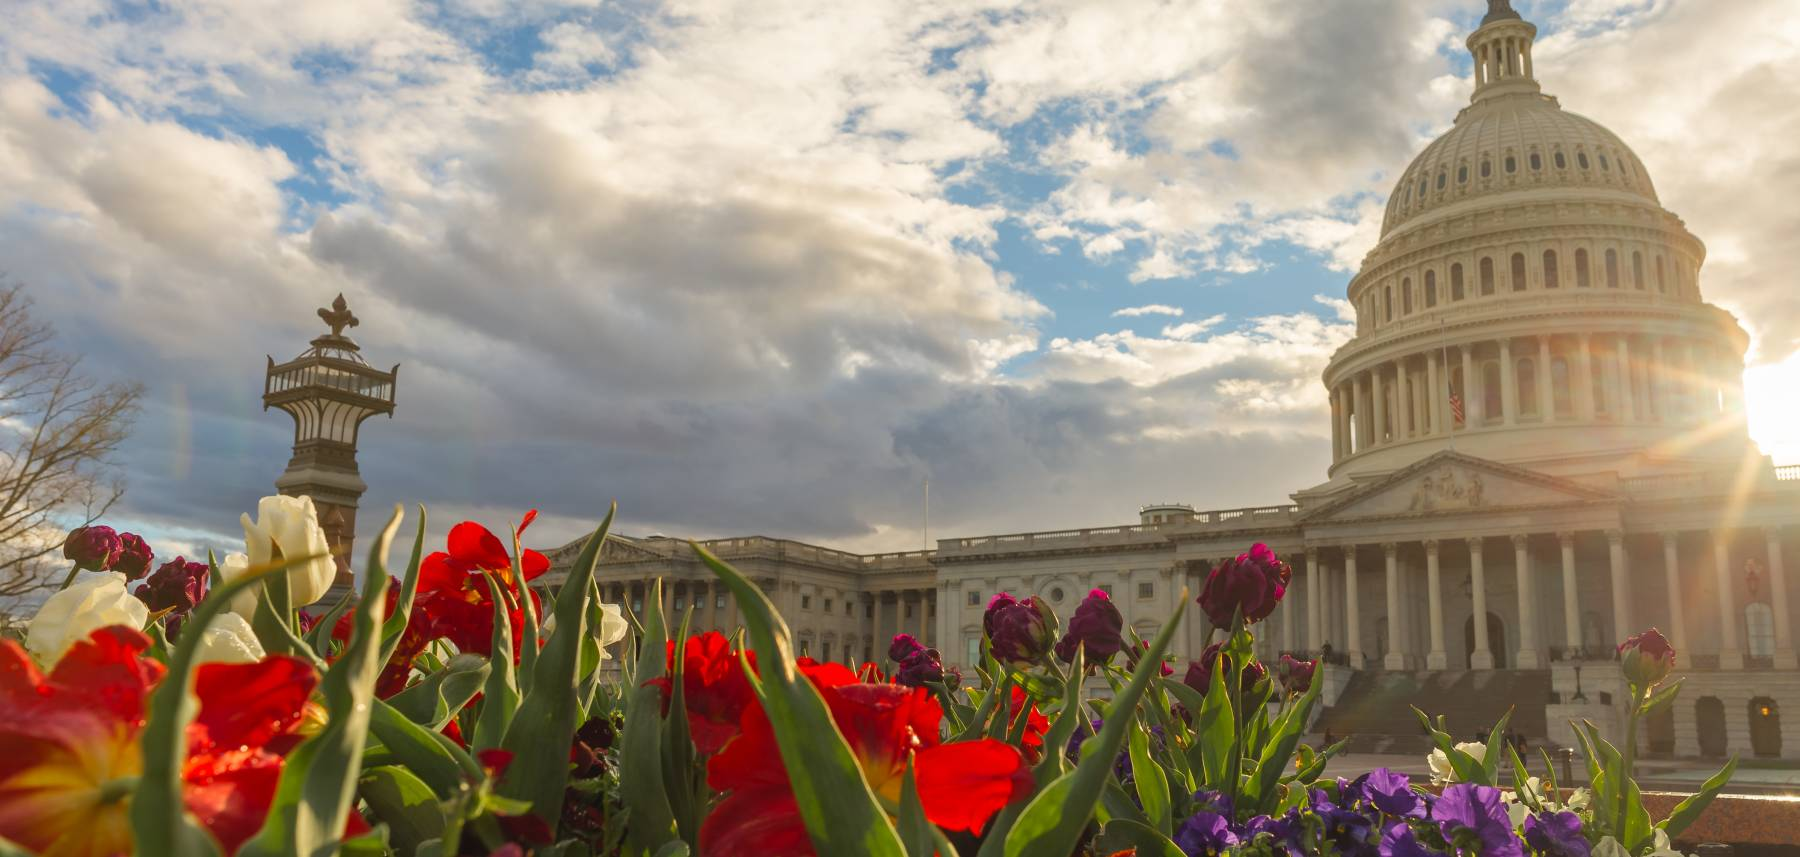 Capital Building in Springtime